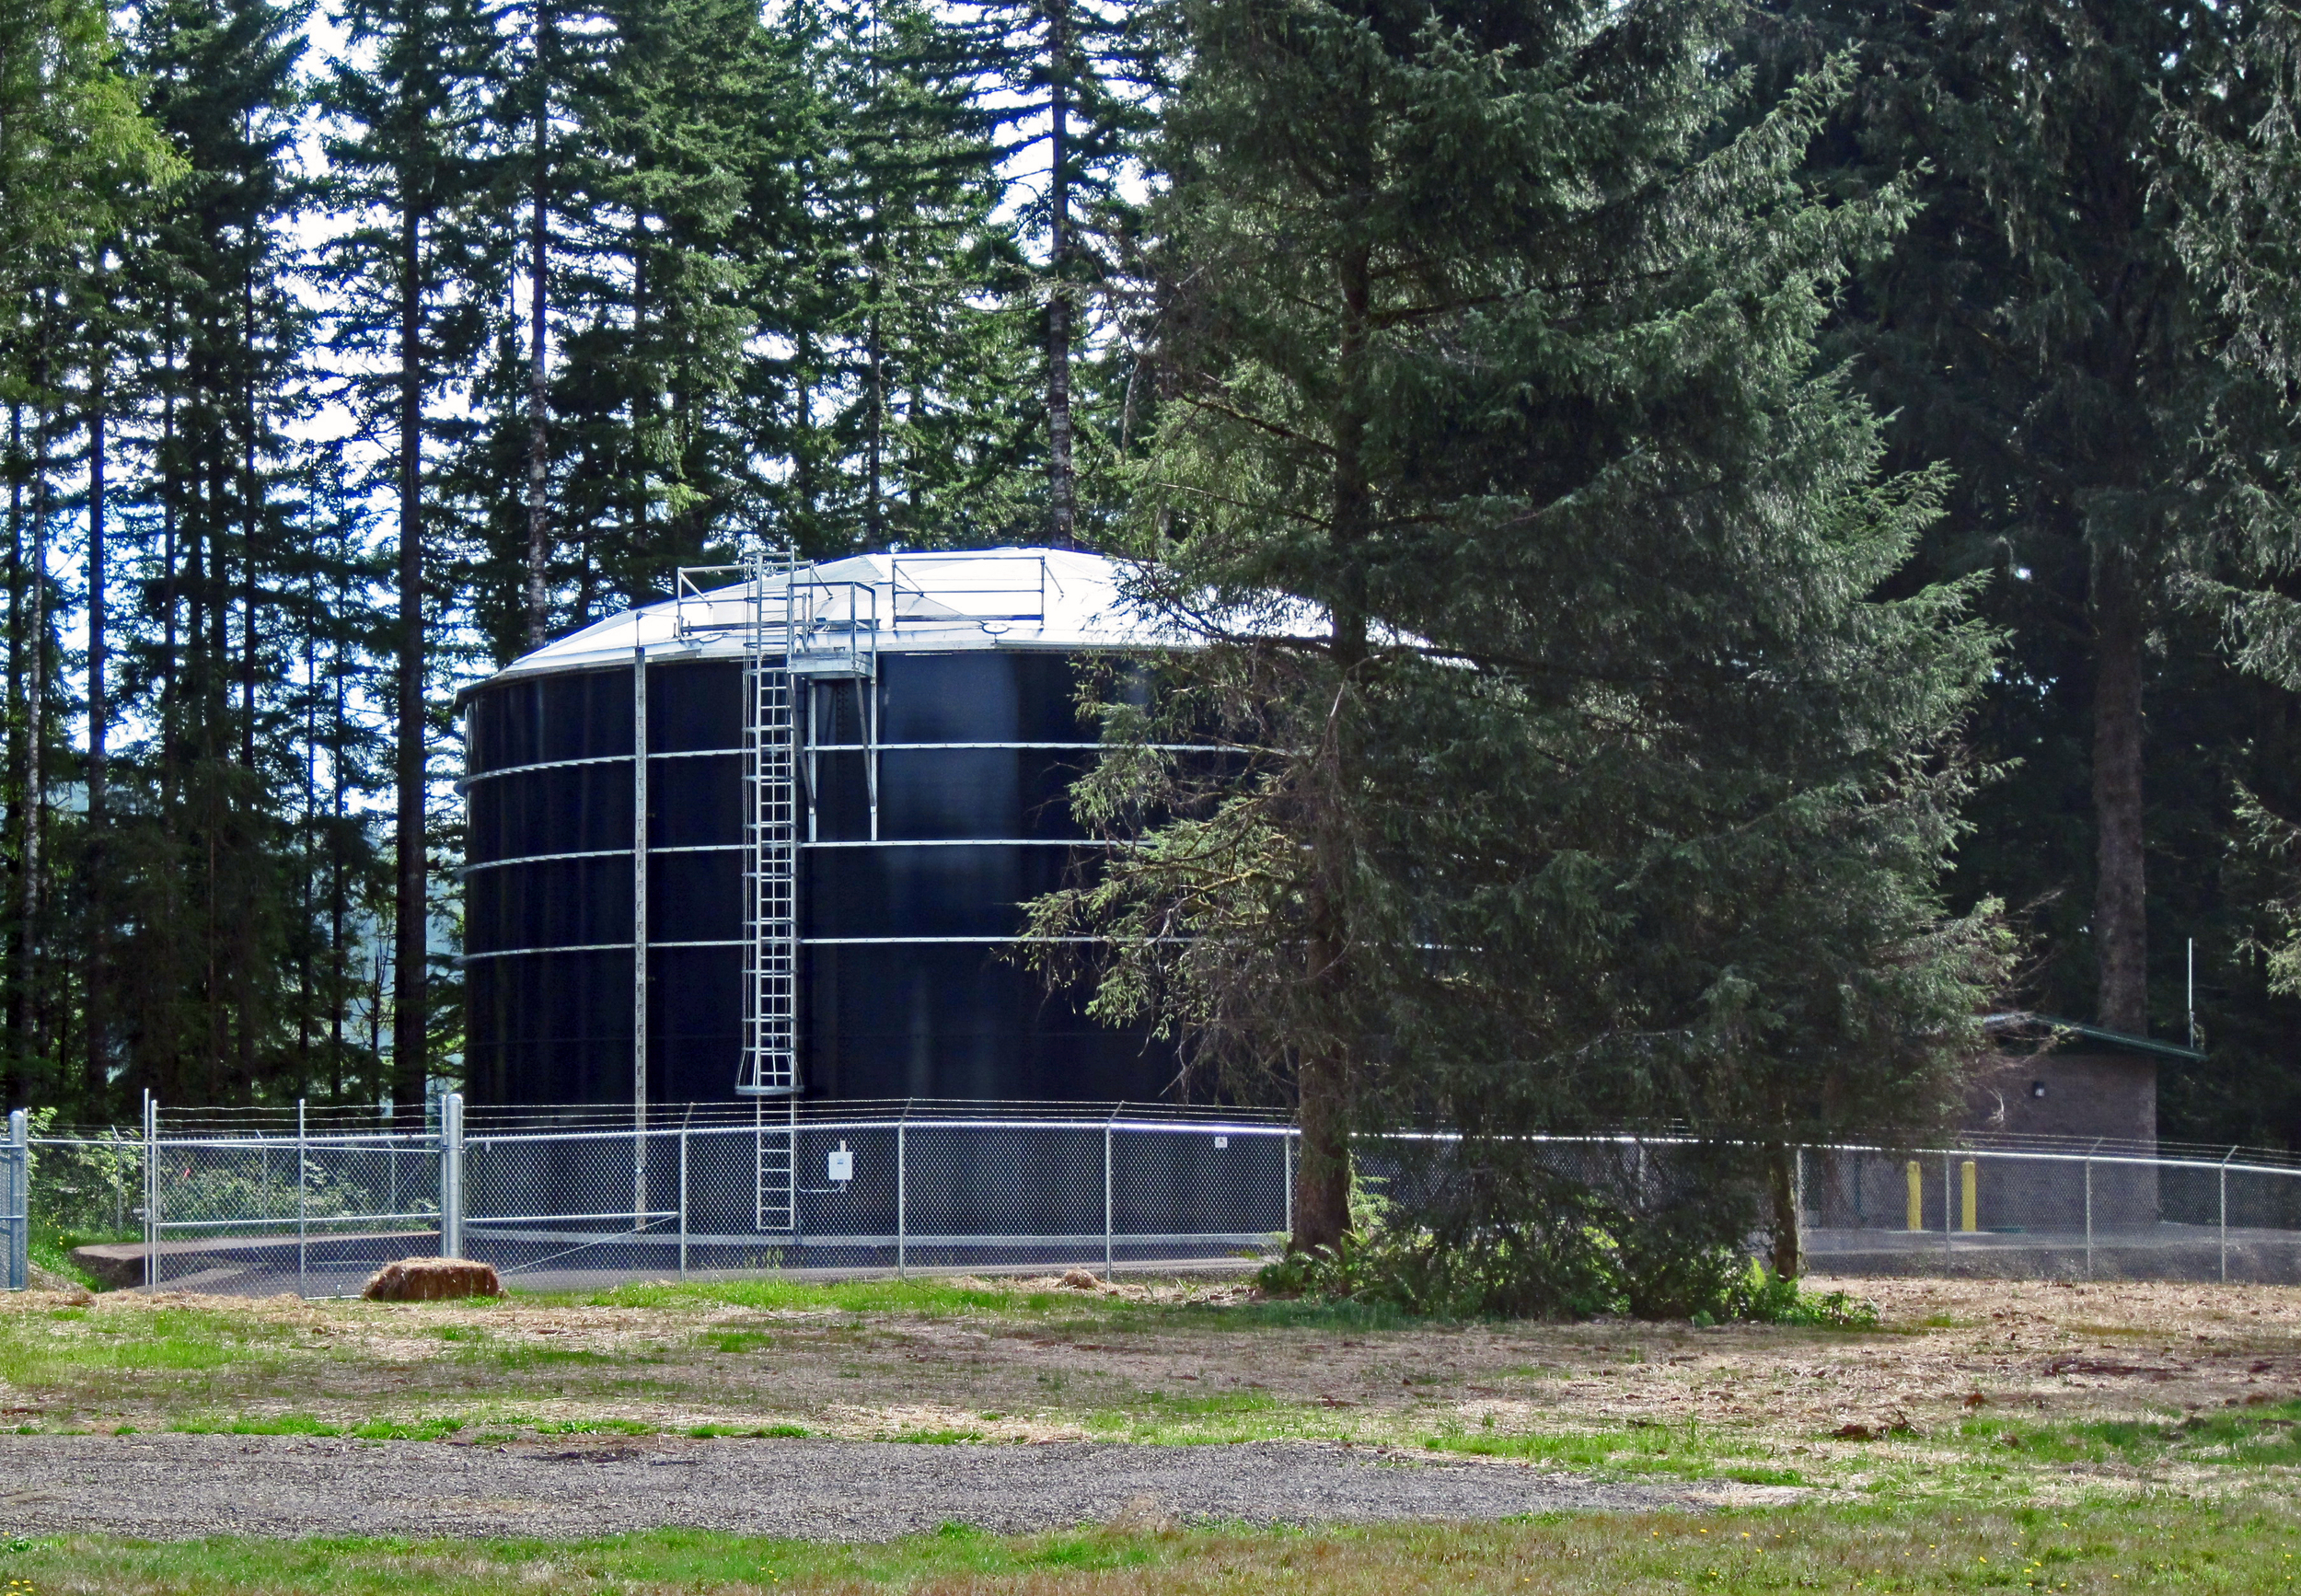 Confederated Tribes of Siletz Indians 0.5 MG Tank | Siletz, Oregon